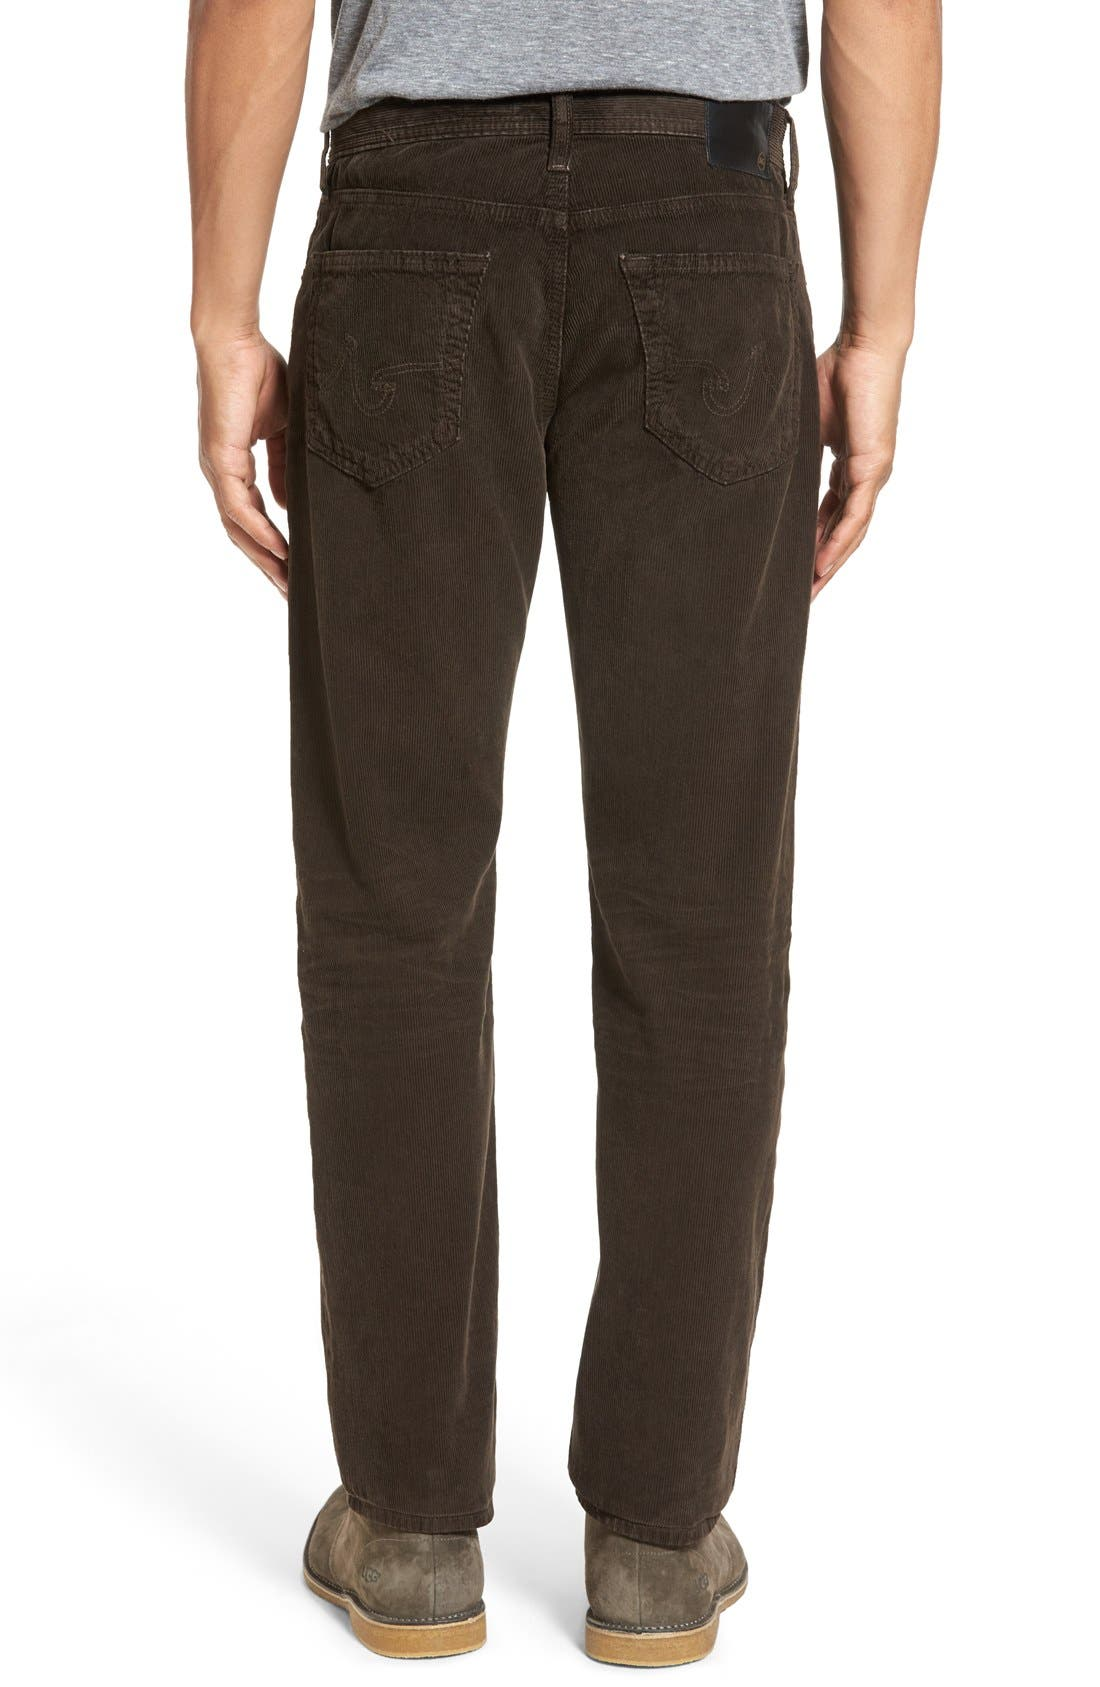 'Graduate' Tailored Straight Leg Corduroy Pants,                             Alternate thumbnail 23, color,